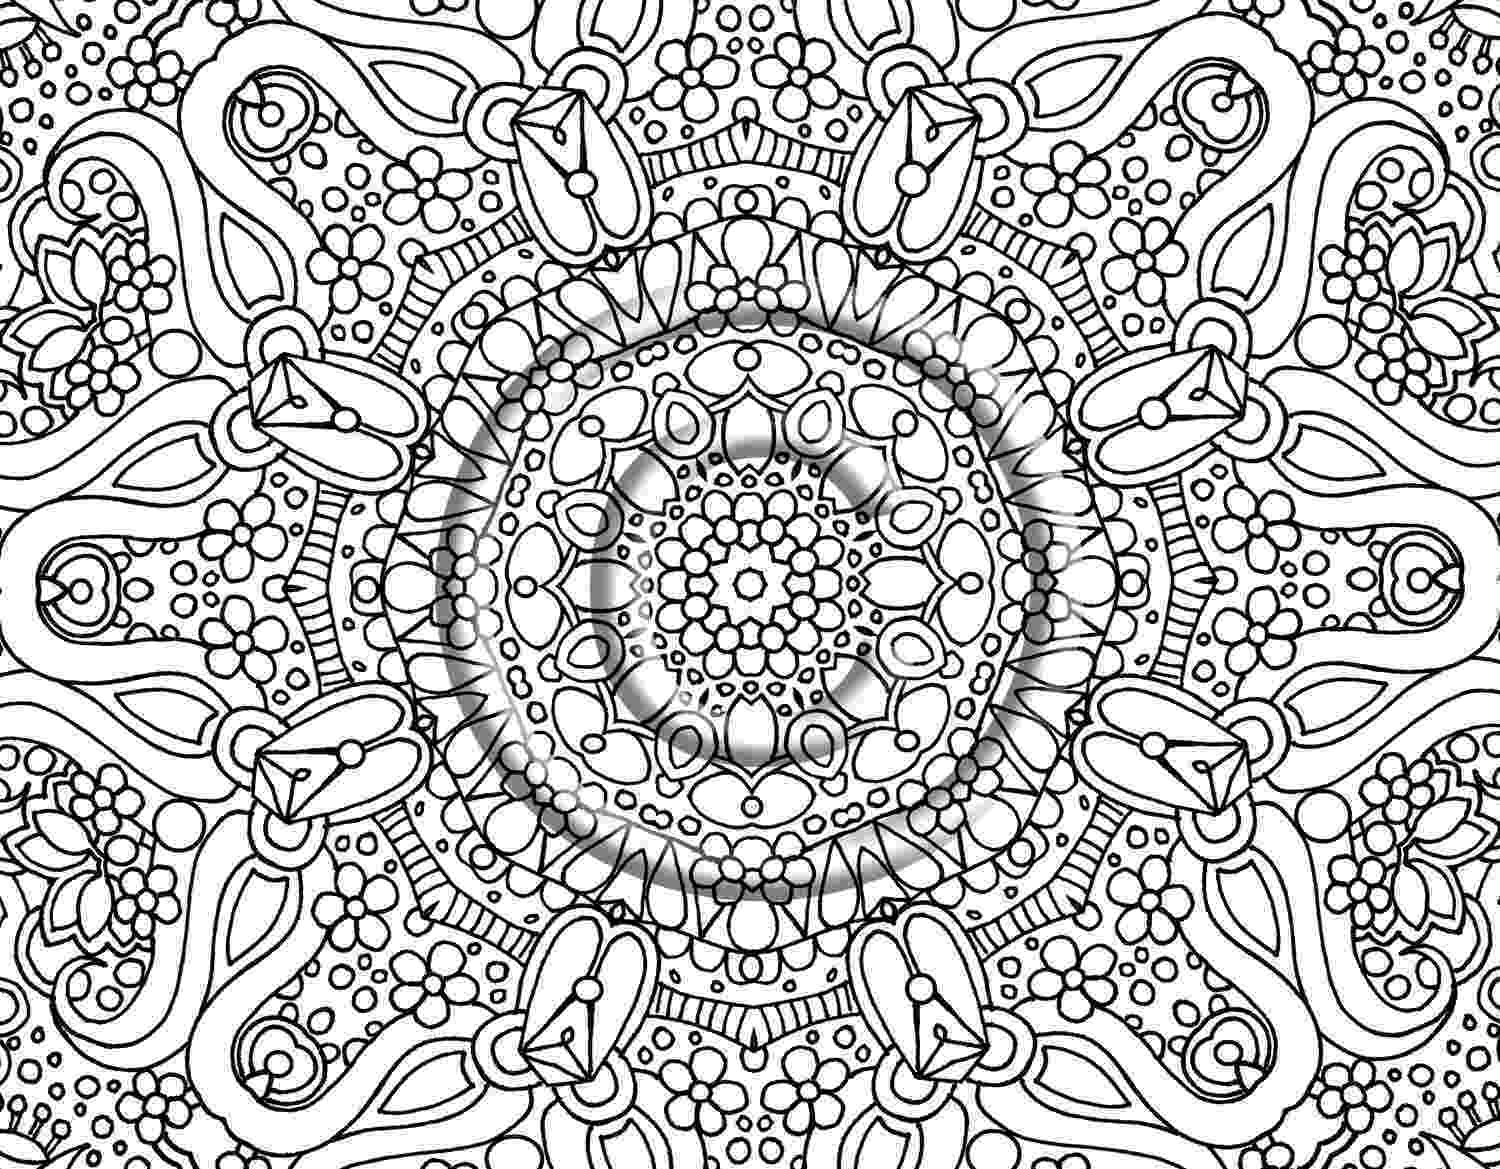 printable difficult coloring pages hard coloring pages for adults best coloring pages for kids printable difficult coloring pages